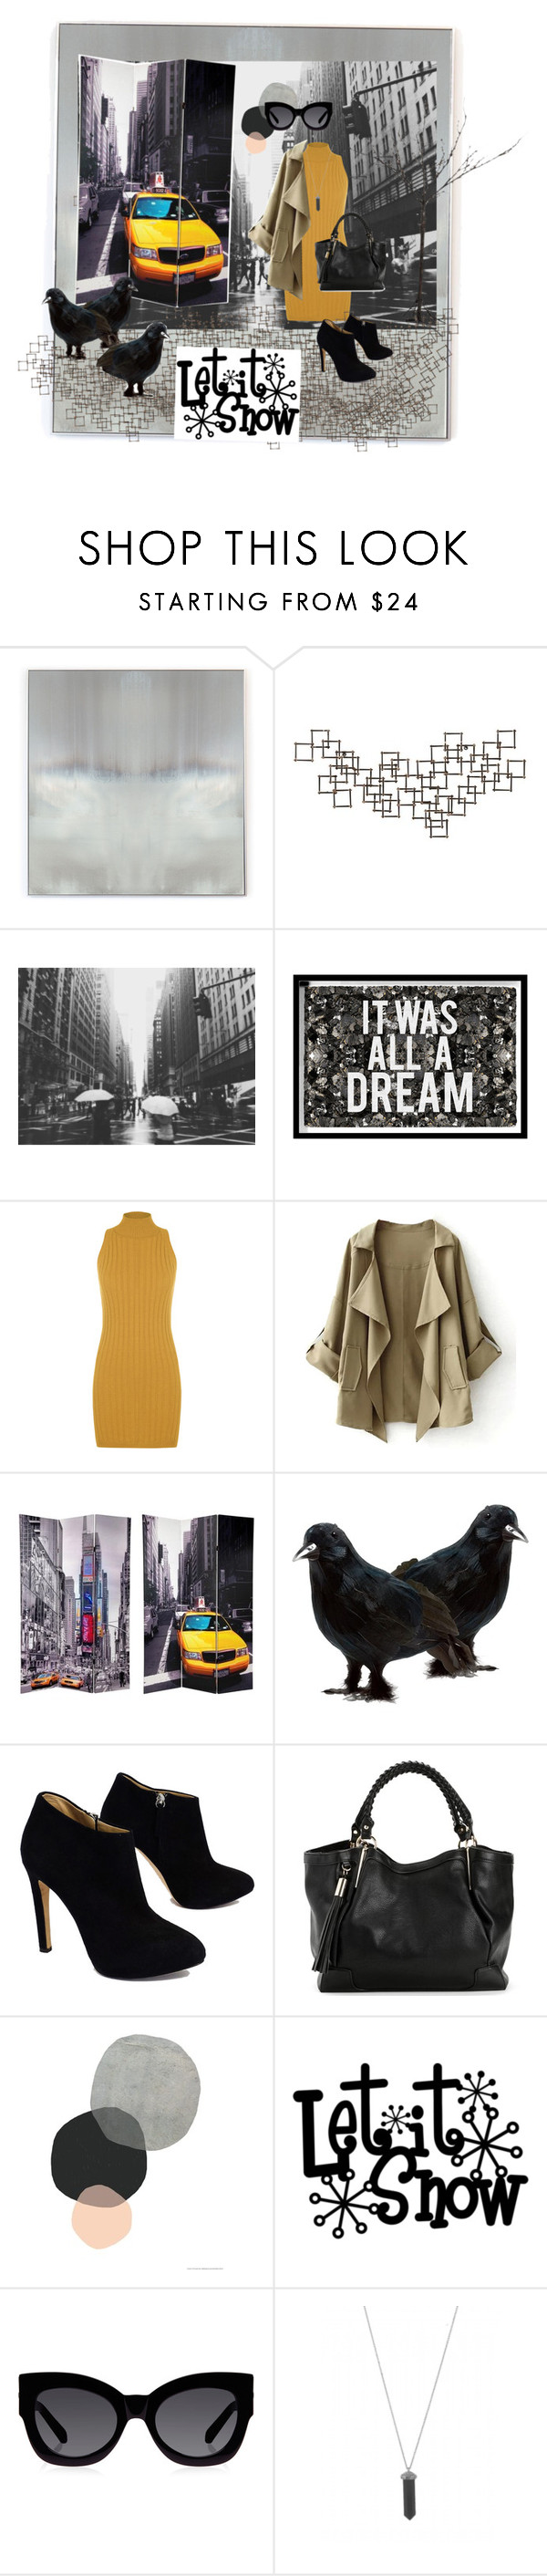 """""""Nyc style"""" by natileeeee ❤ liked on Polyvore featuring Benson-Cobb Studios, Crate and Barrel, Oliver Gal Artist Co., WearAll, TAXI, Giuseppe Zanotti, Karen Walker and Karen Kane"""